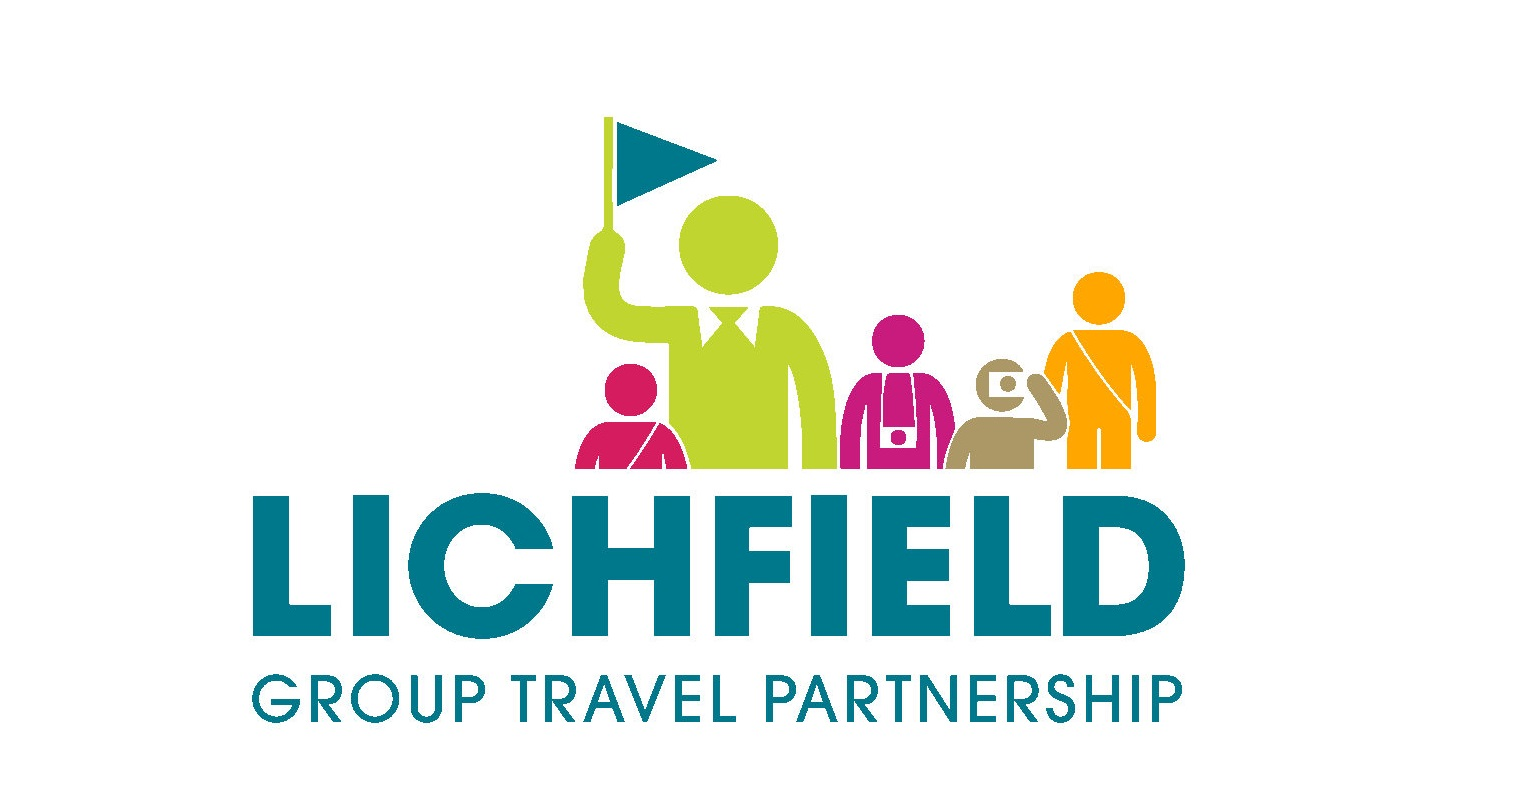 Group Travel Partnership Logo